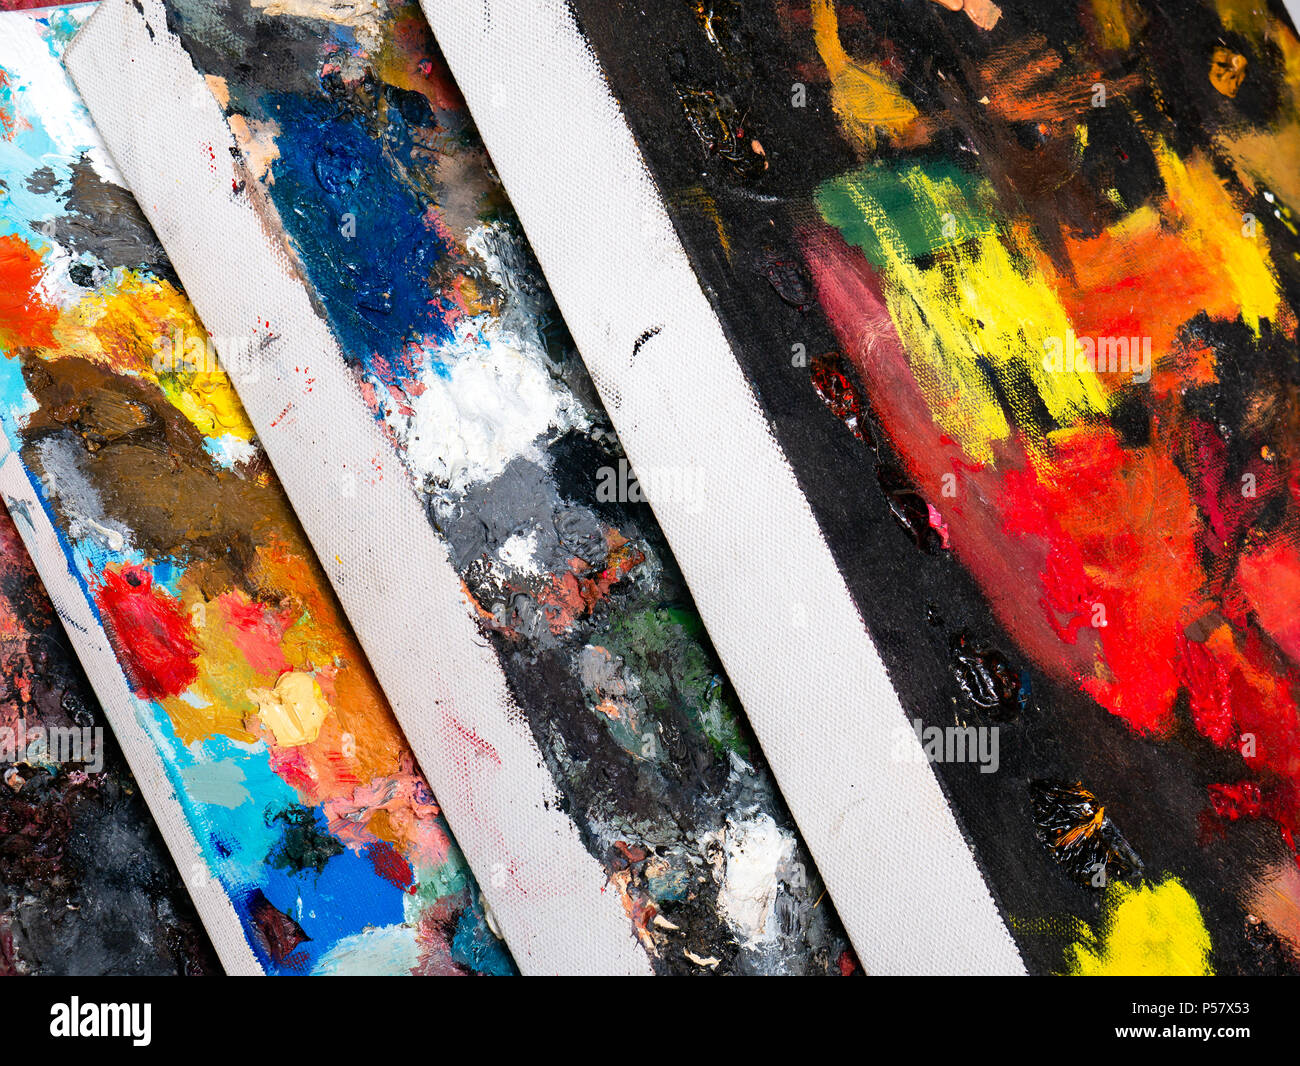 Stack of abstract texture and color on canvas Stock Photo